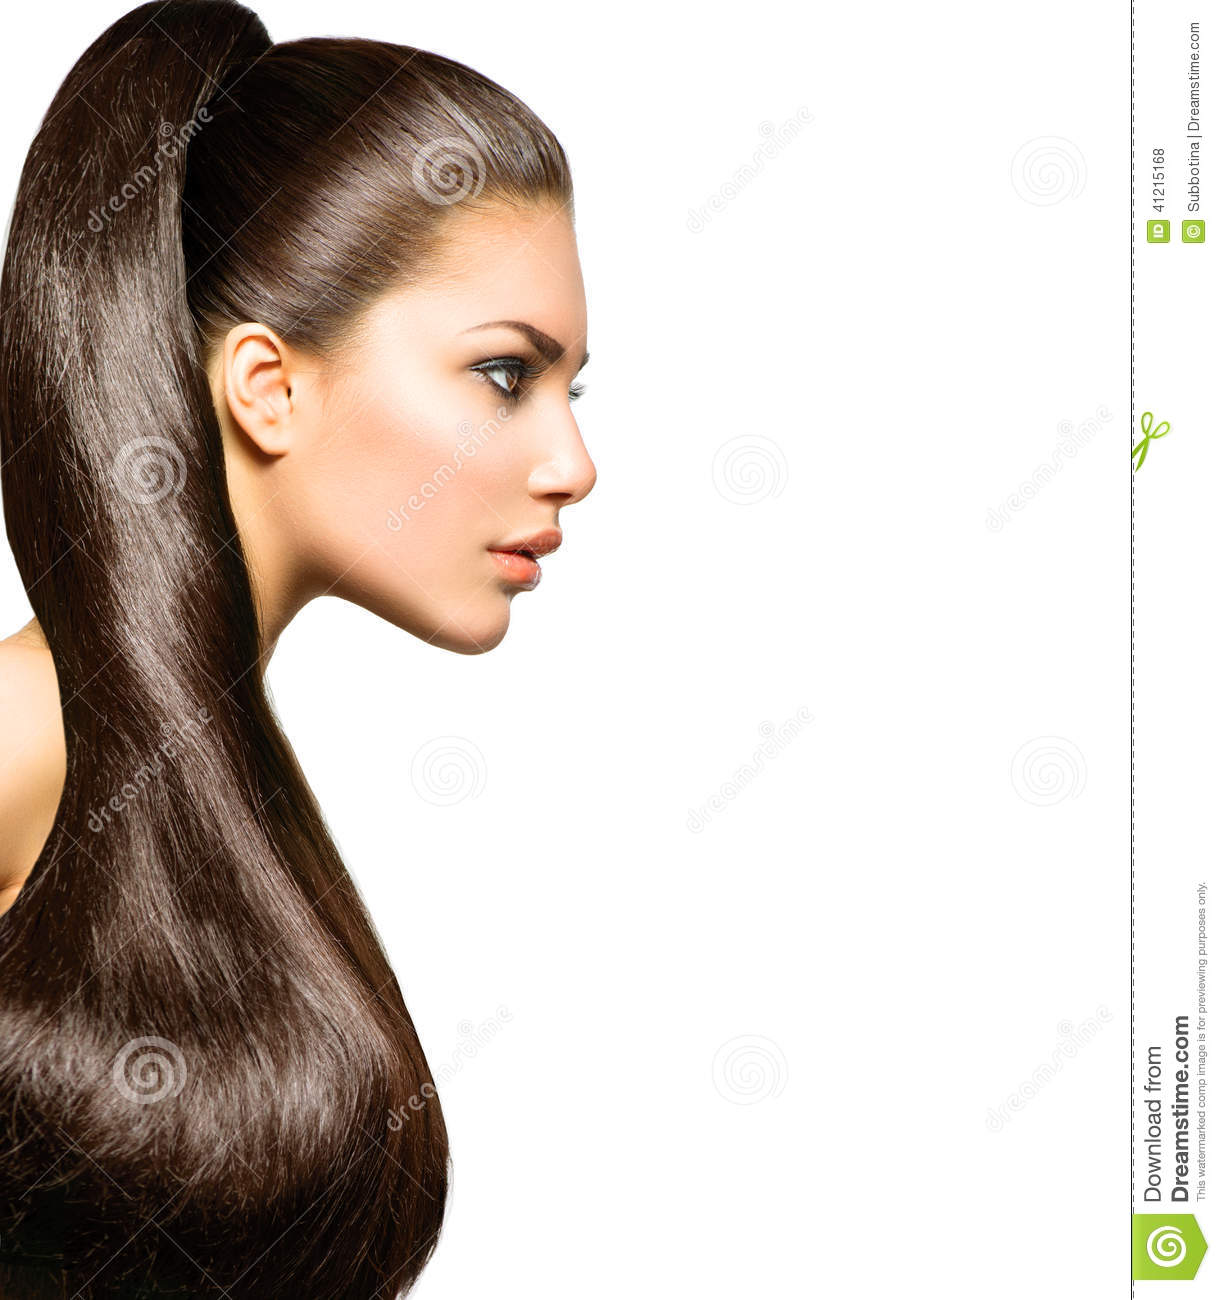 Ponytail Hairstyle. Beauty with Long Brown Hair